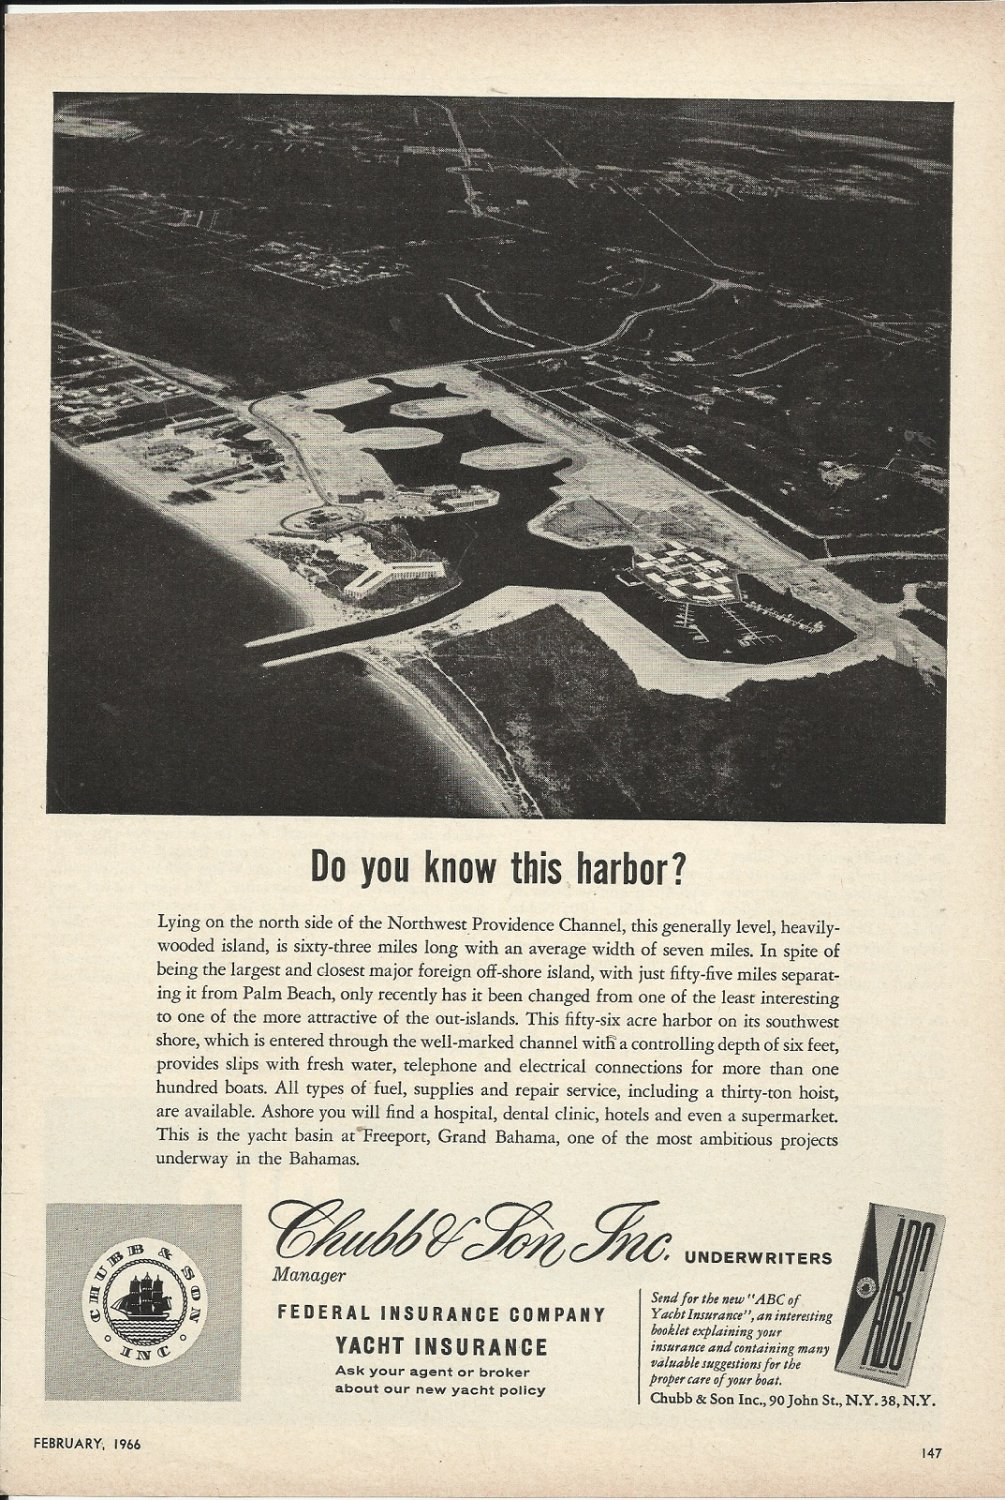 1966 Chubb & Son Insurance Ad-Great Aerial Photo of Freeport Grand Bahama